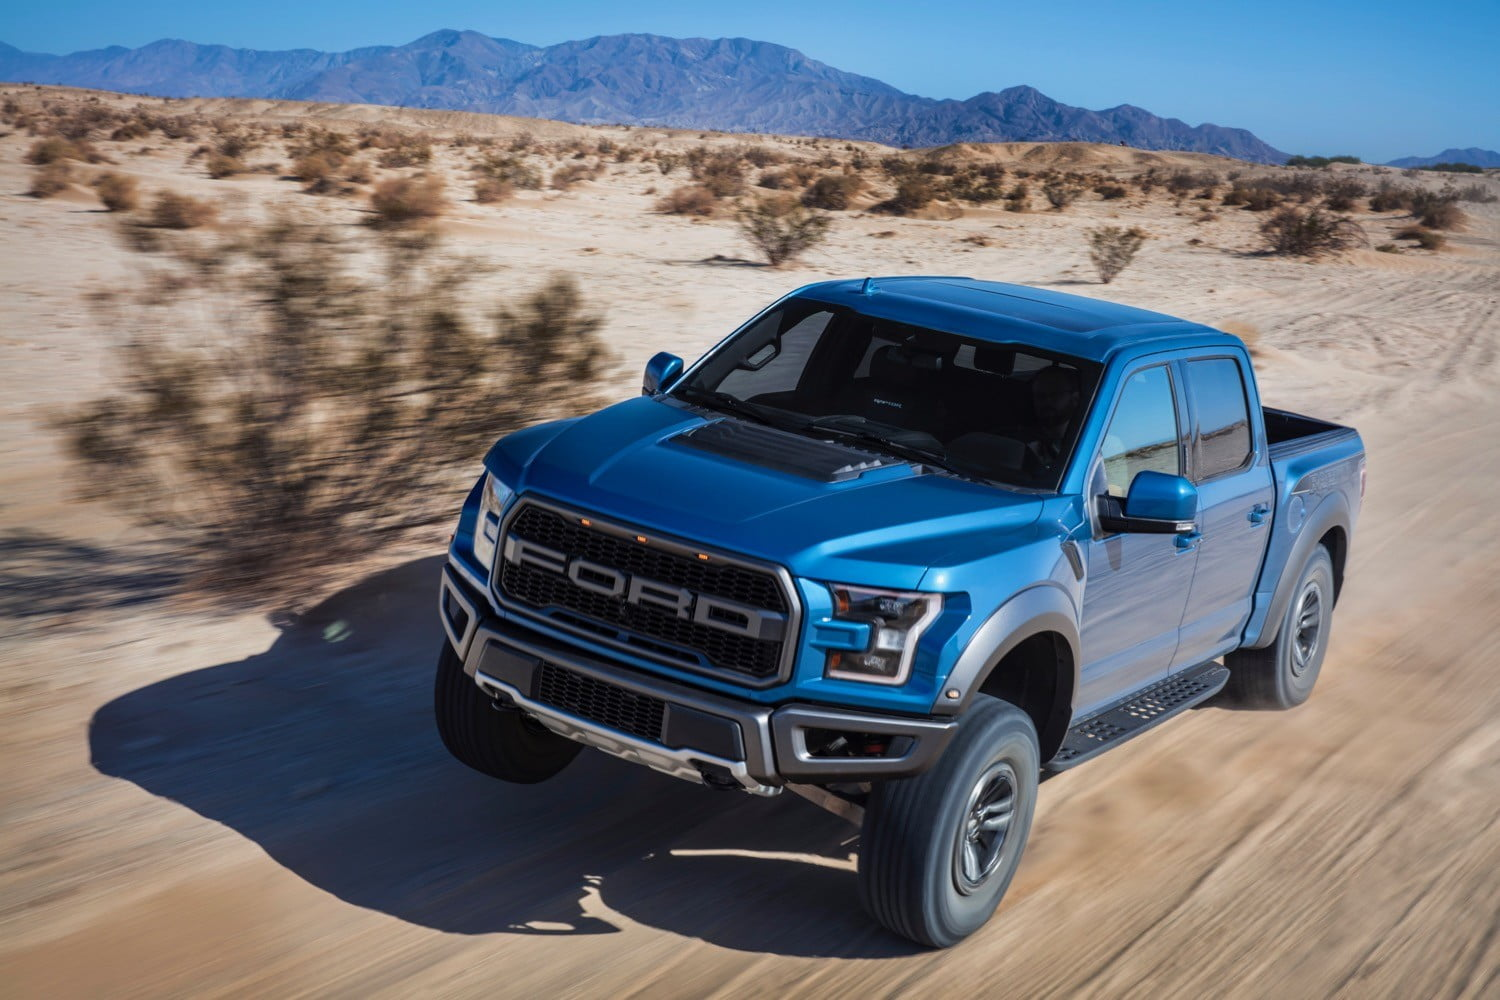 2019 Ford F-150 Raptor Adds Adaptive Dampers, 'Trail Control